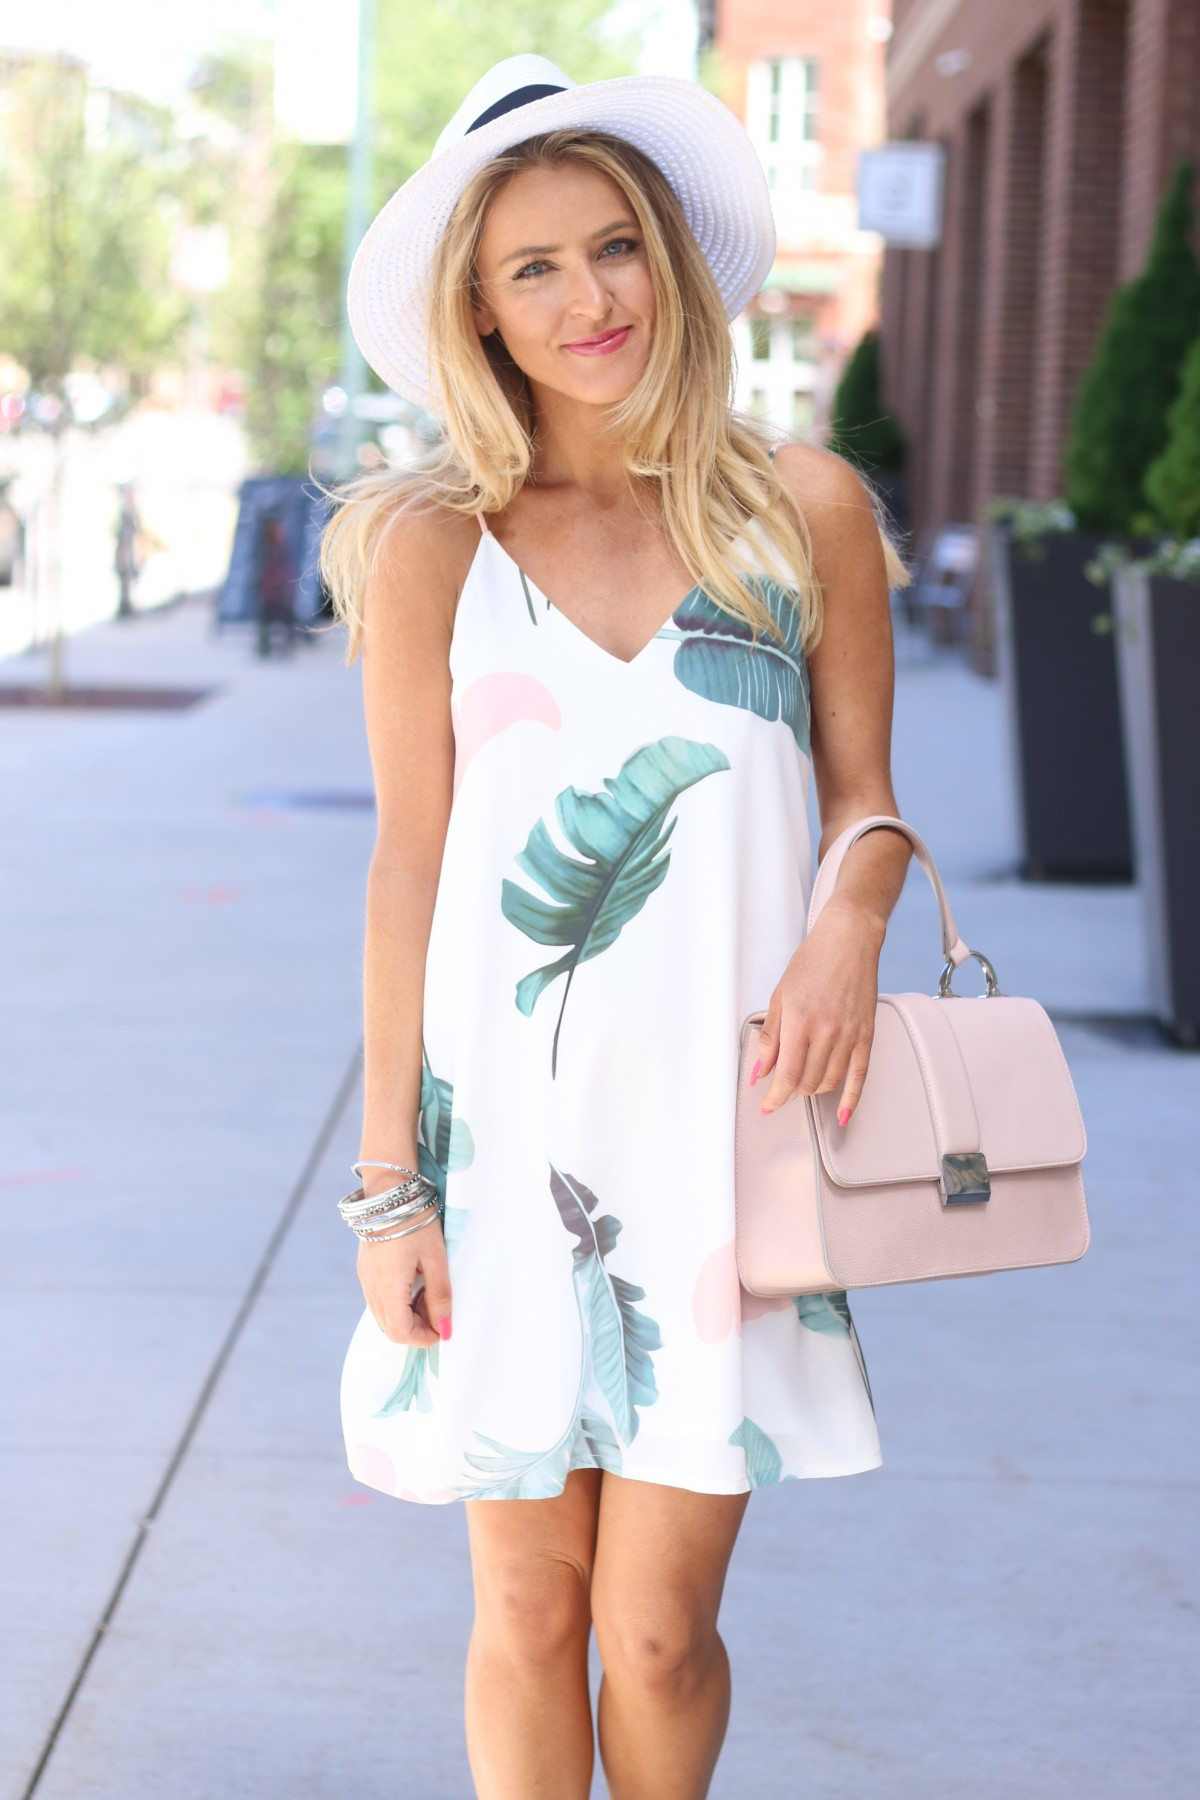 Amber from Every Once in a Style is wearing a palm print dress